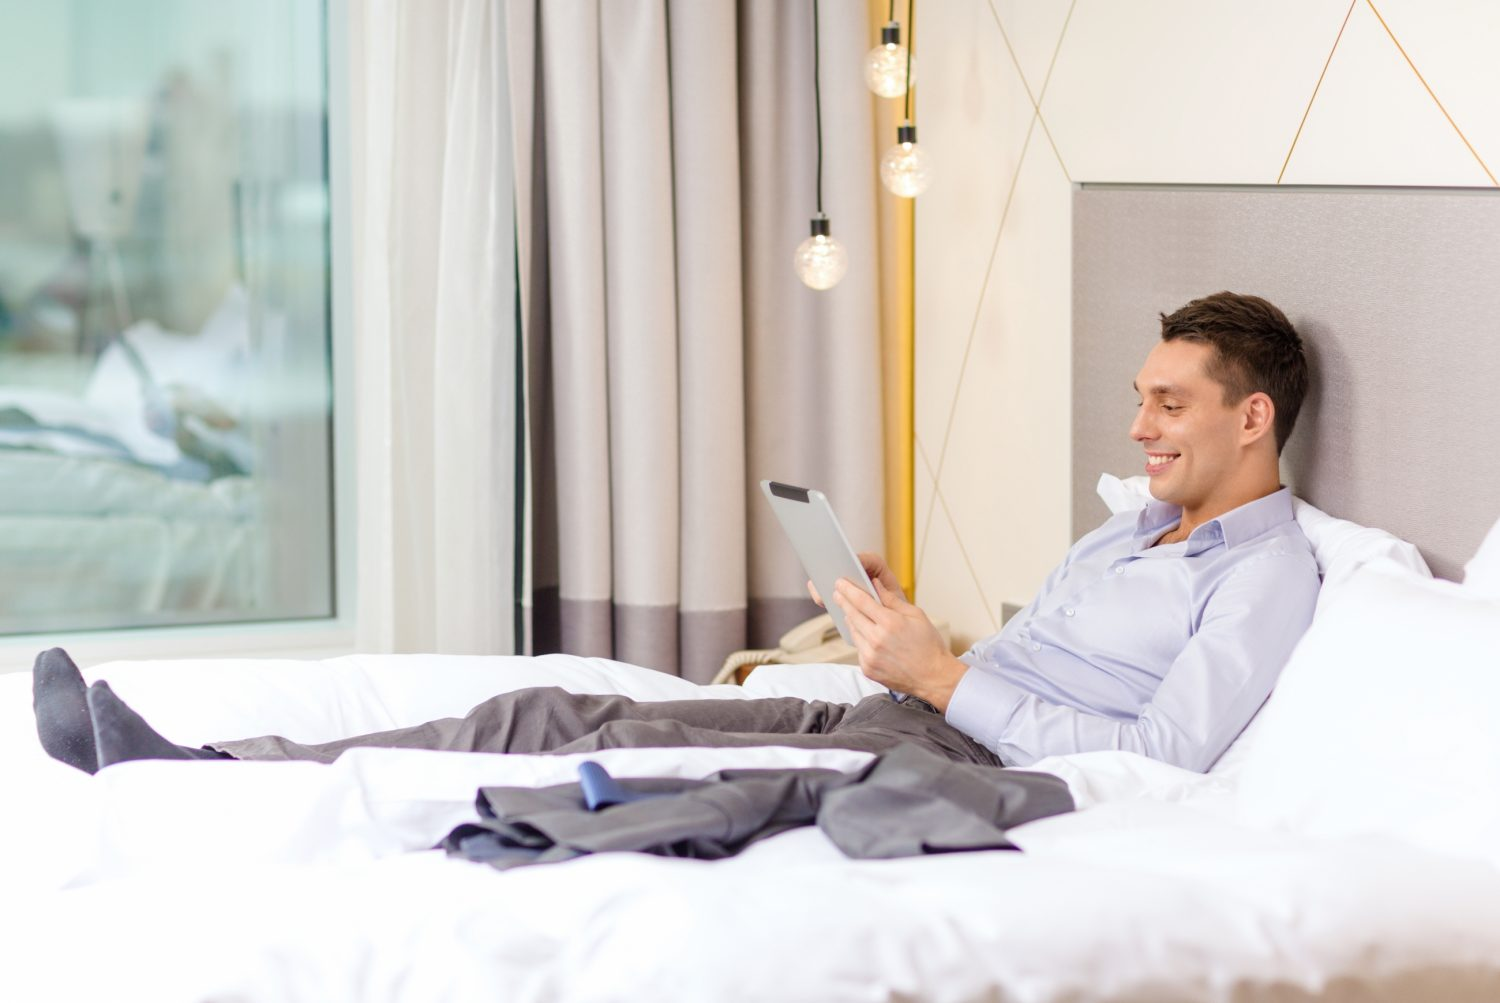 Voice-activated hotel rooms from Aloft